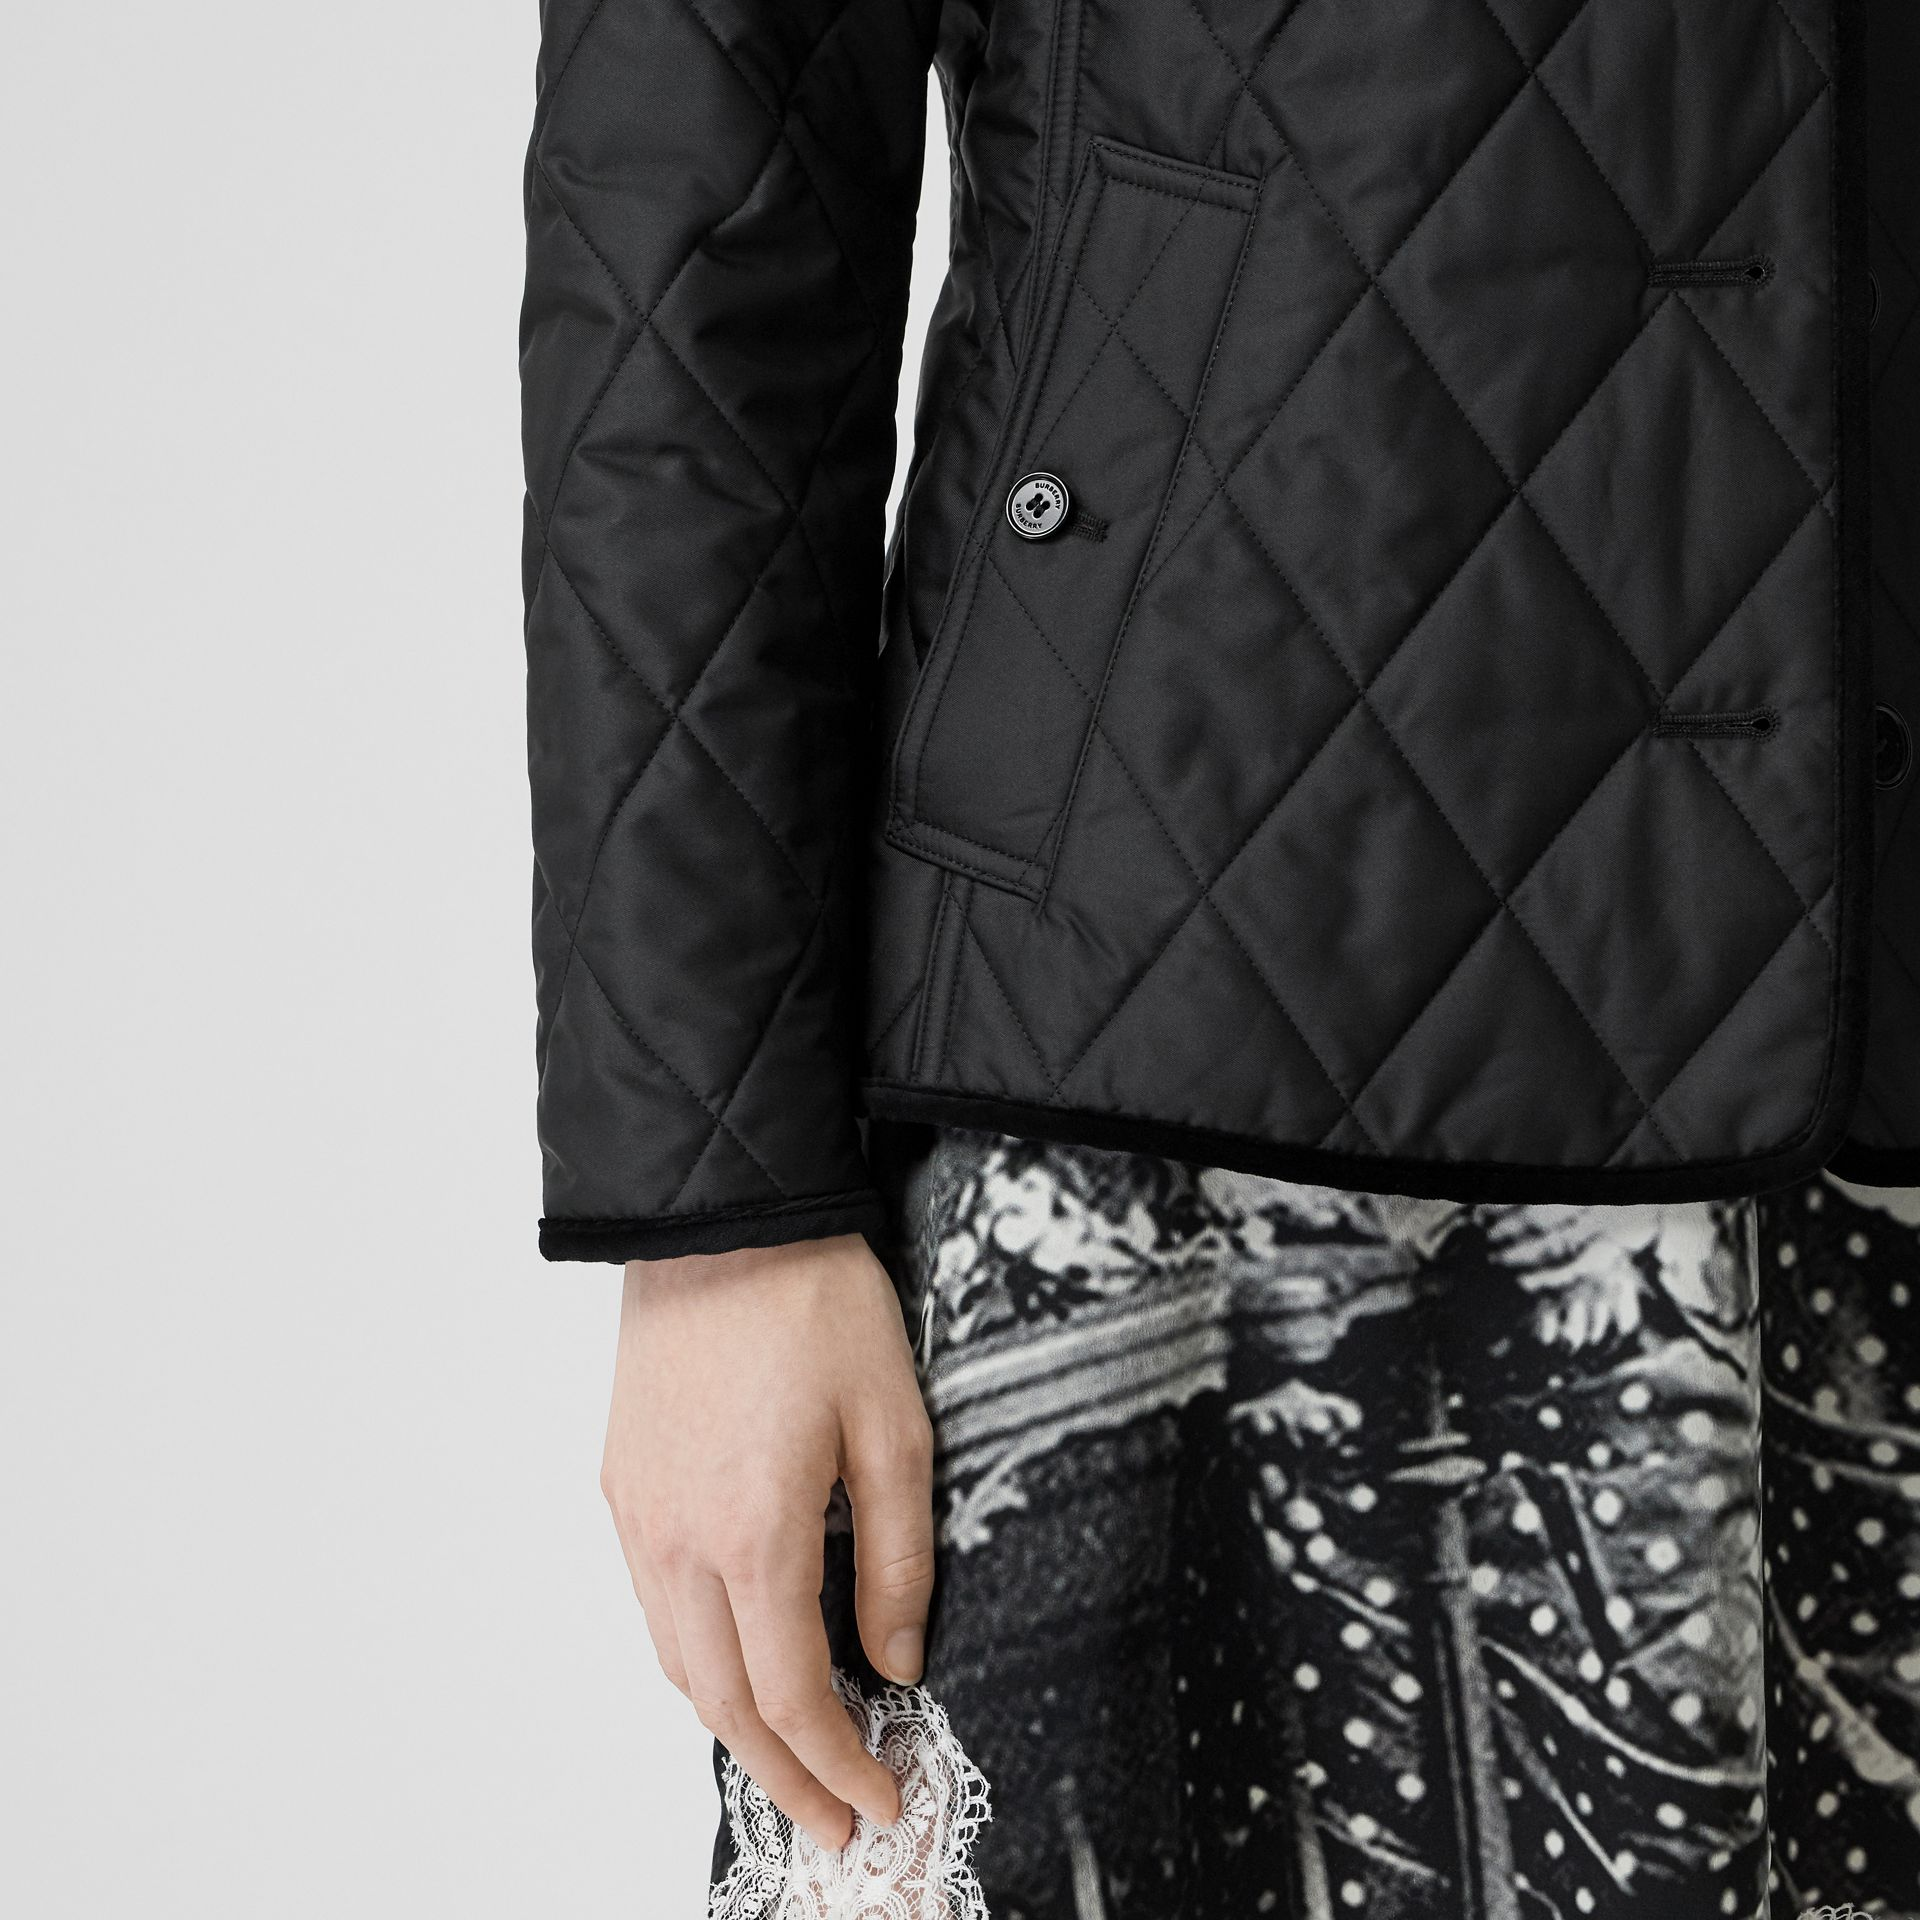 Monogram Motif Diamond Quilted Jacket in Black - Women | Burberry Singapore - gallery image 5